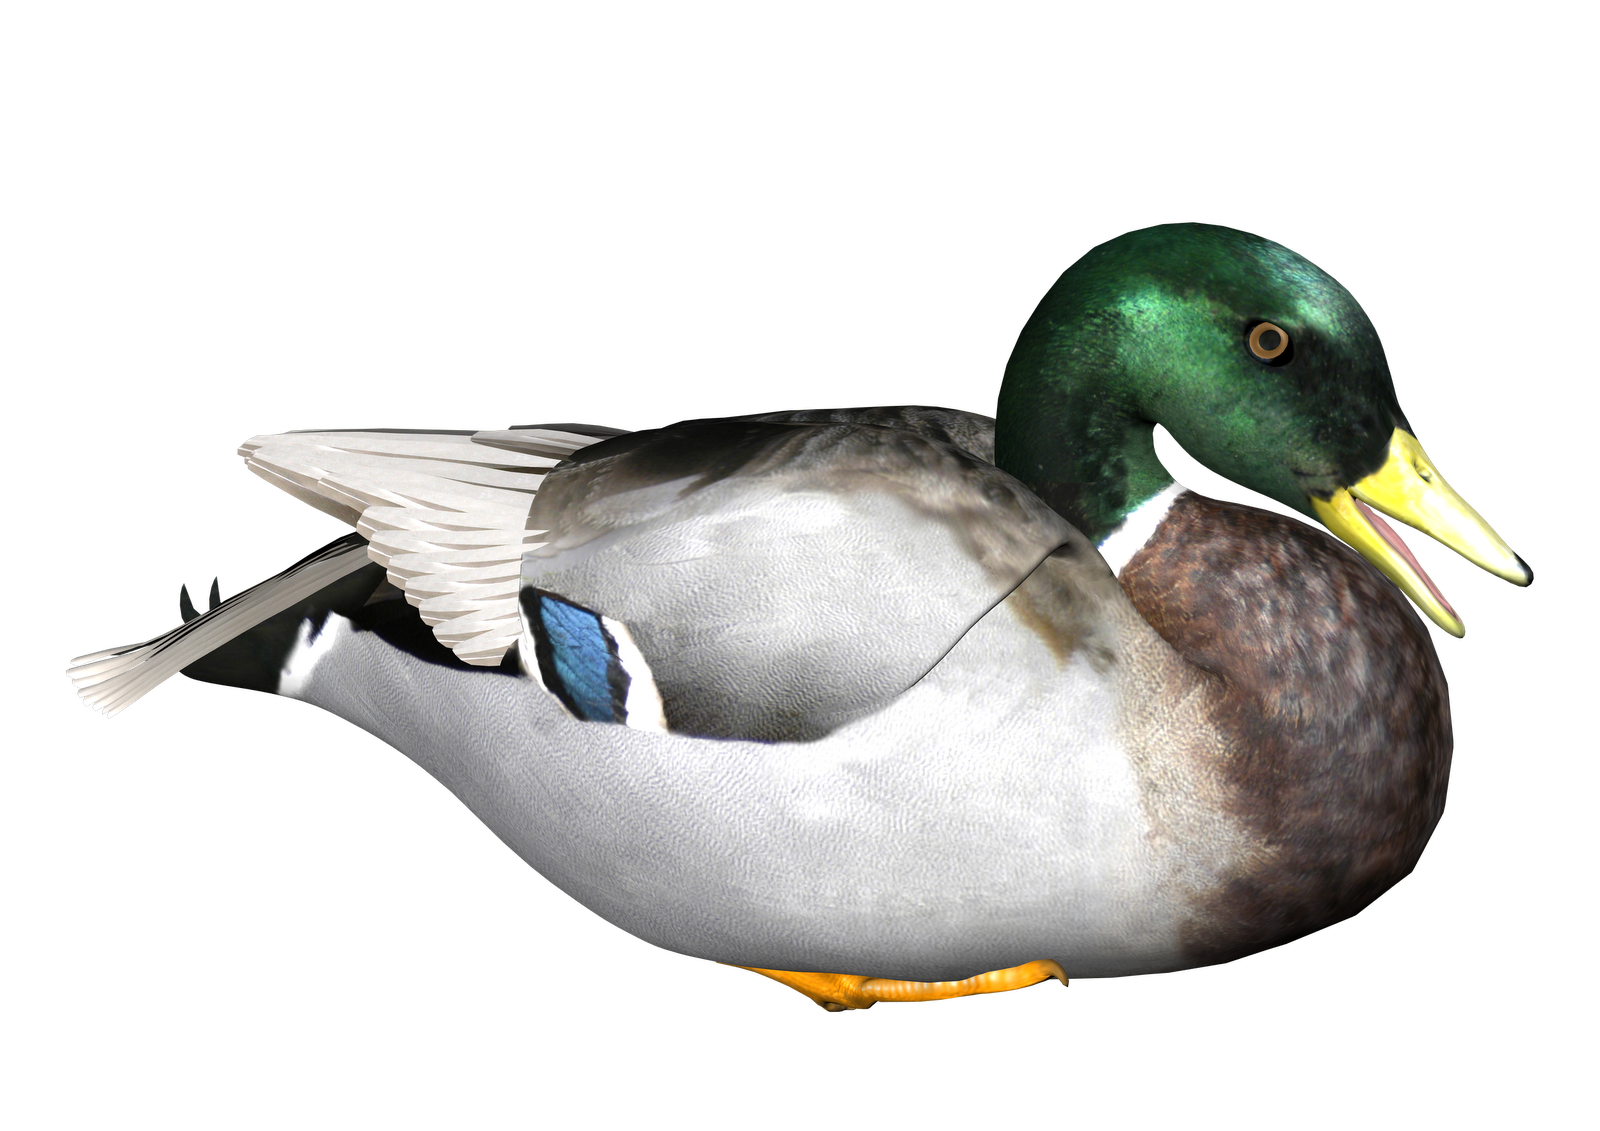 Duck Transparent Background - Duck Hunting PNG HD